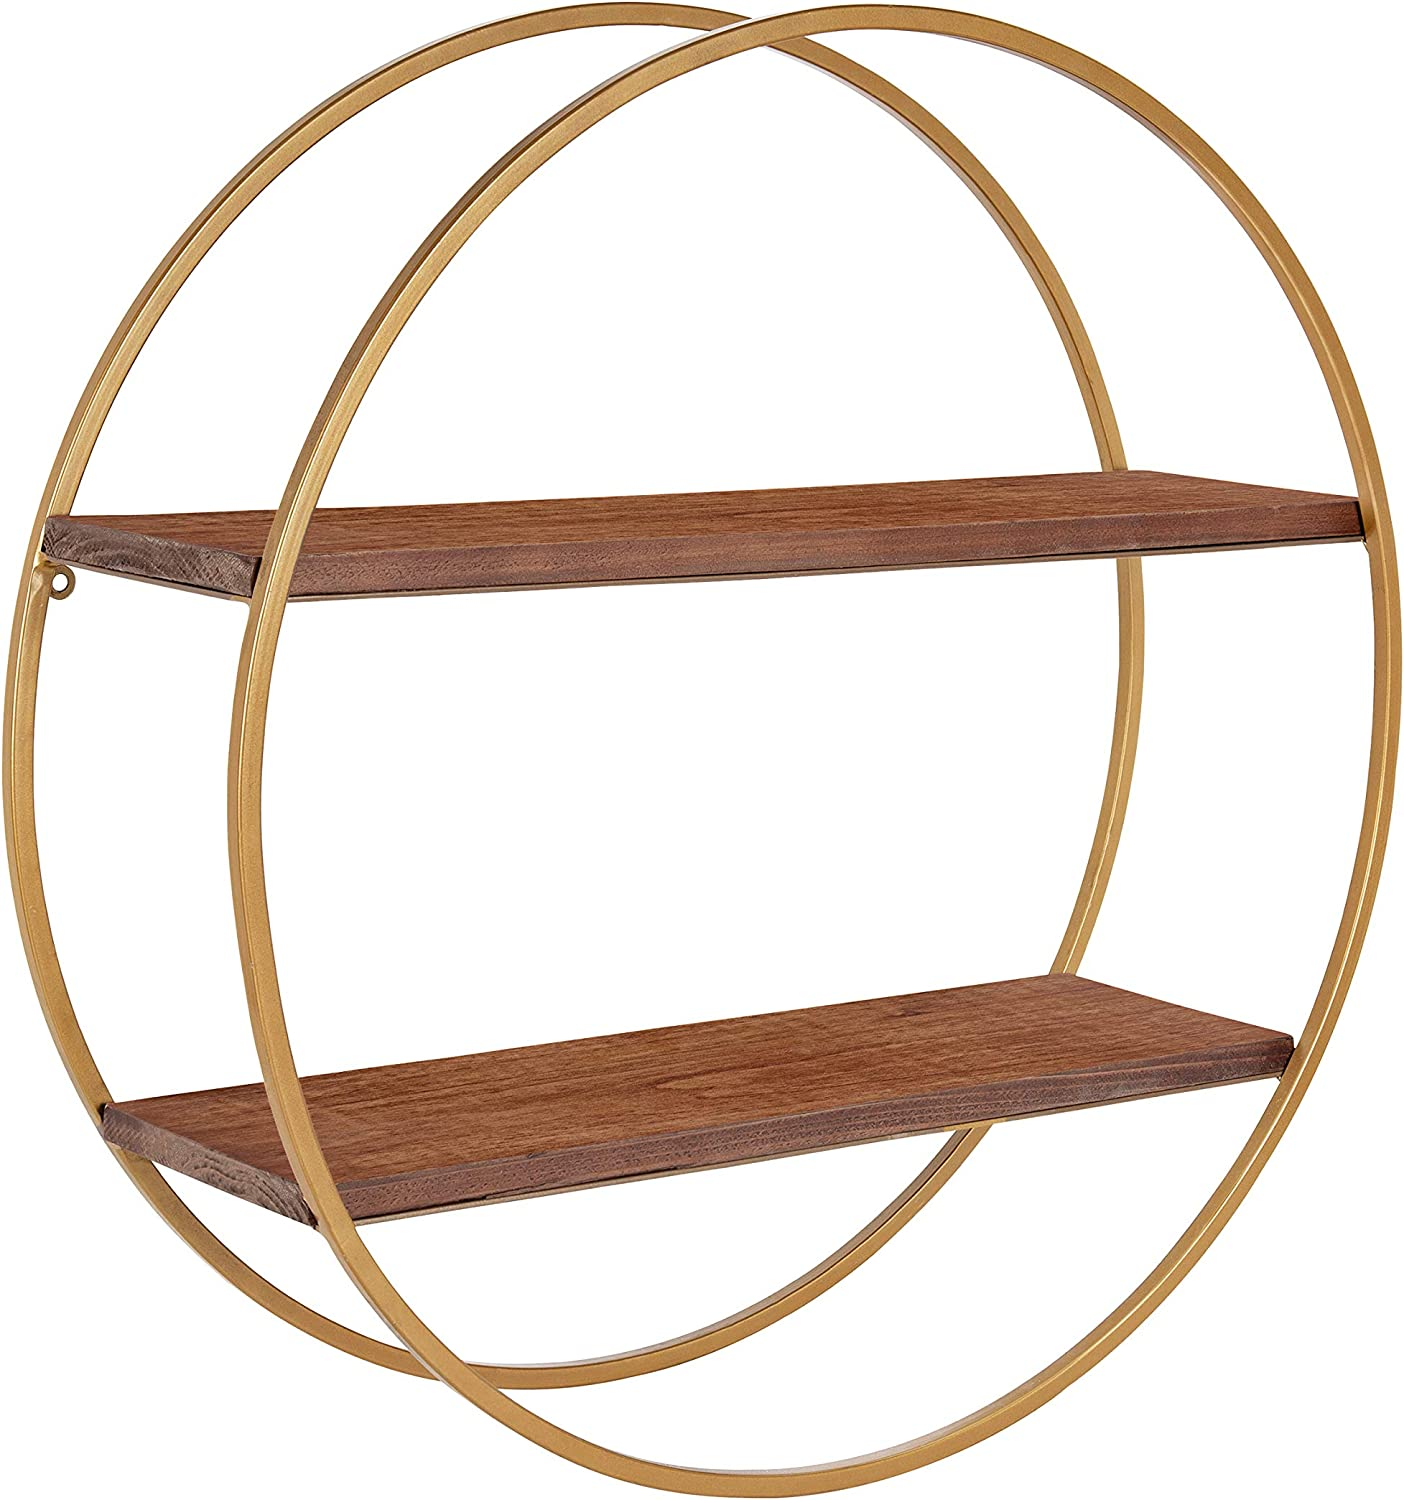 Kate and Laurel Sequoia Modern Round Wall Shelf, 24